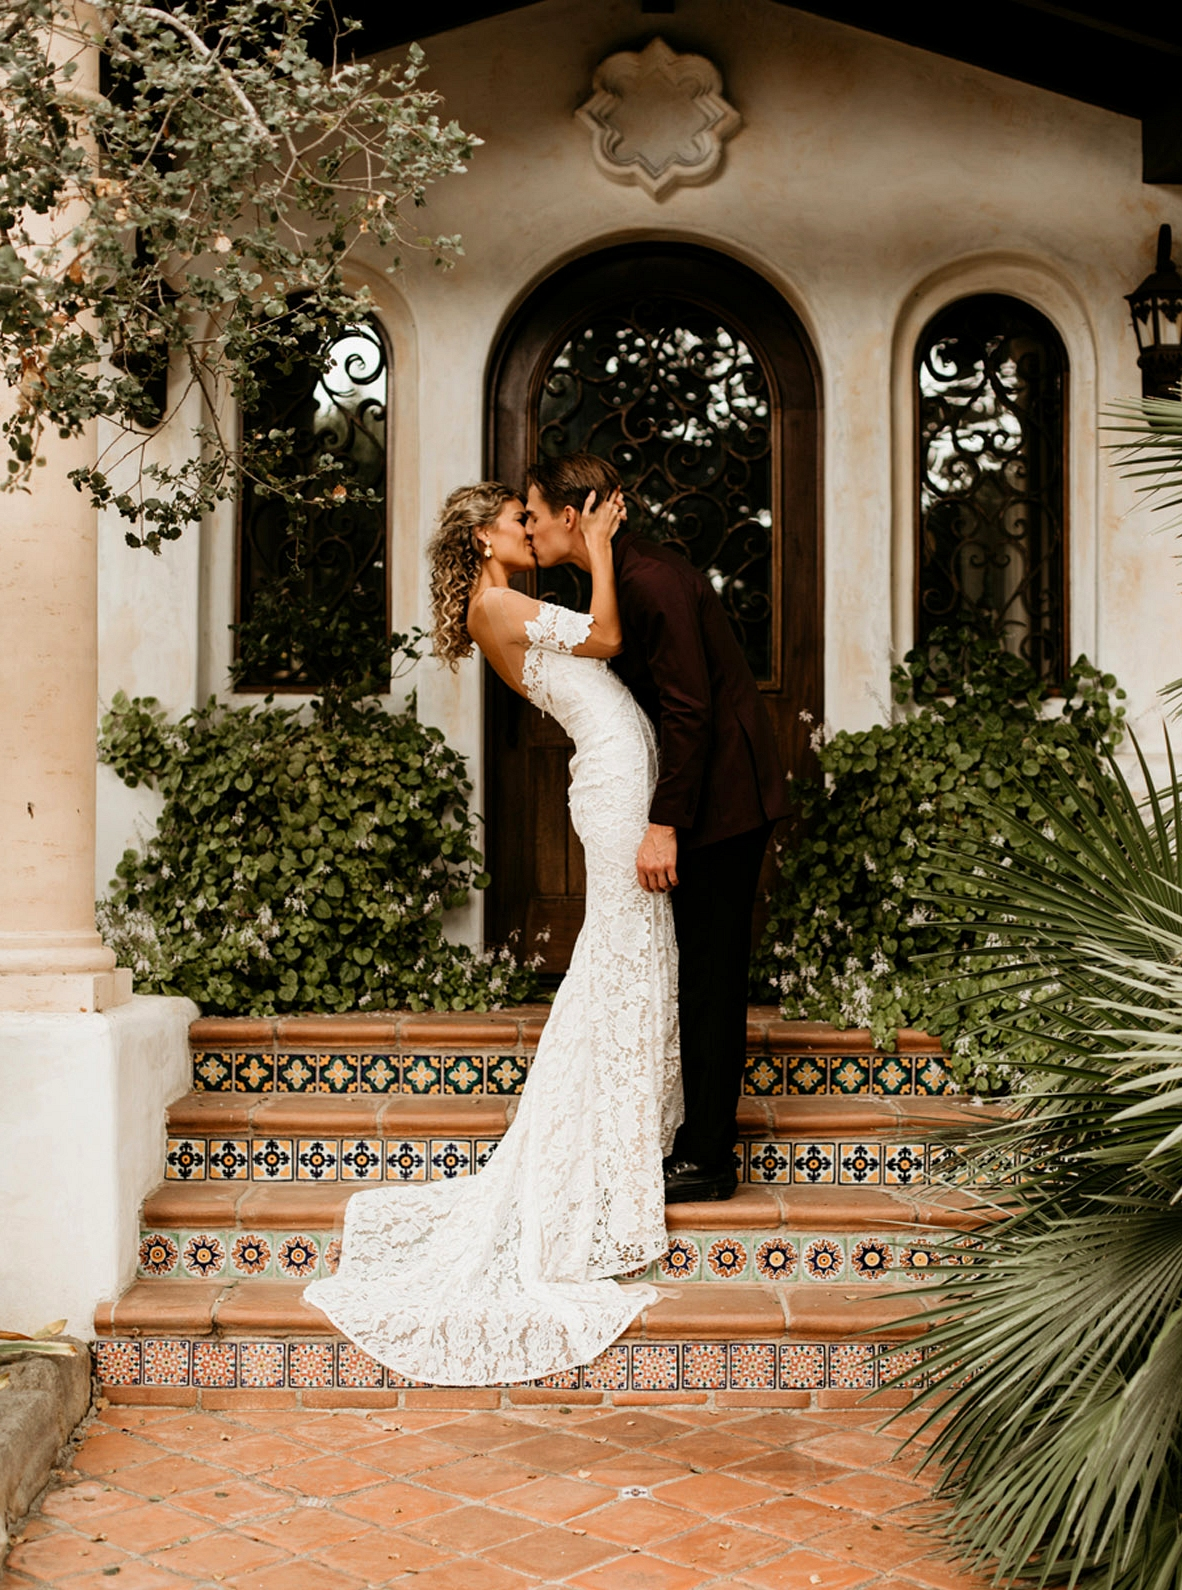 carter gown by Lovers Society x Green Wedding Shoes in Hawaiian Wedding